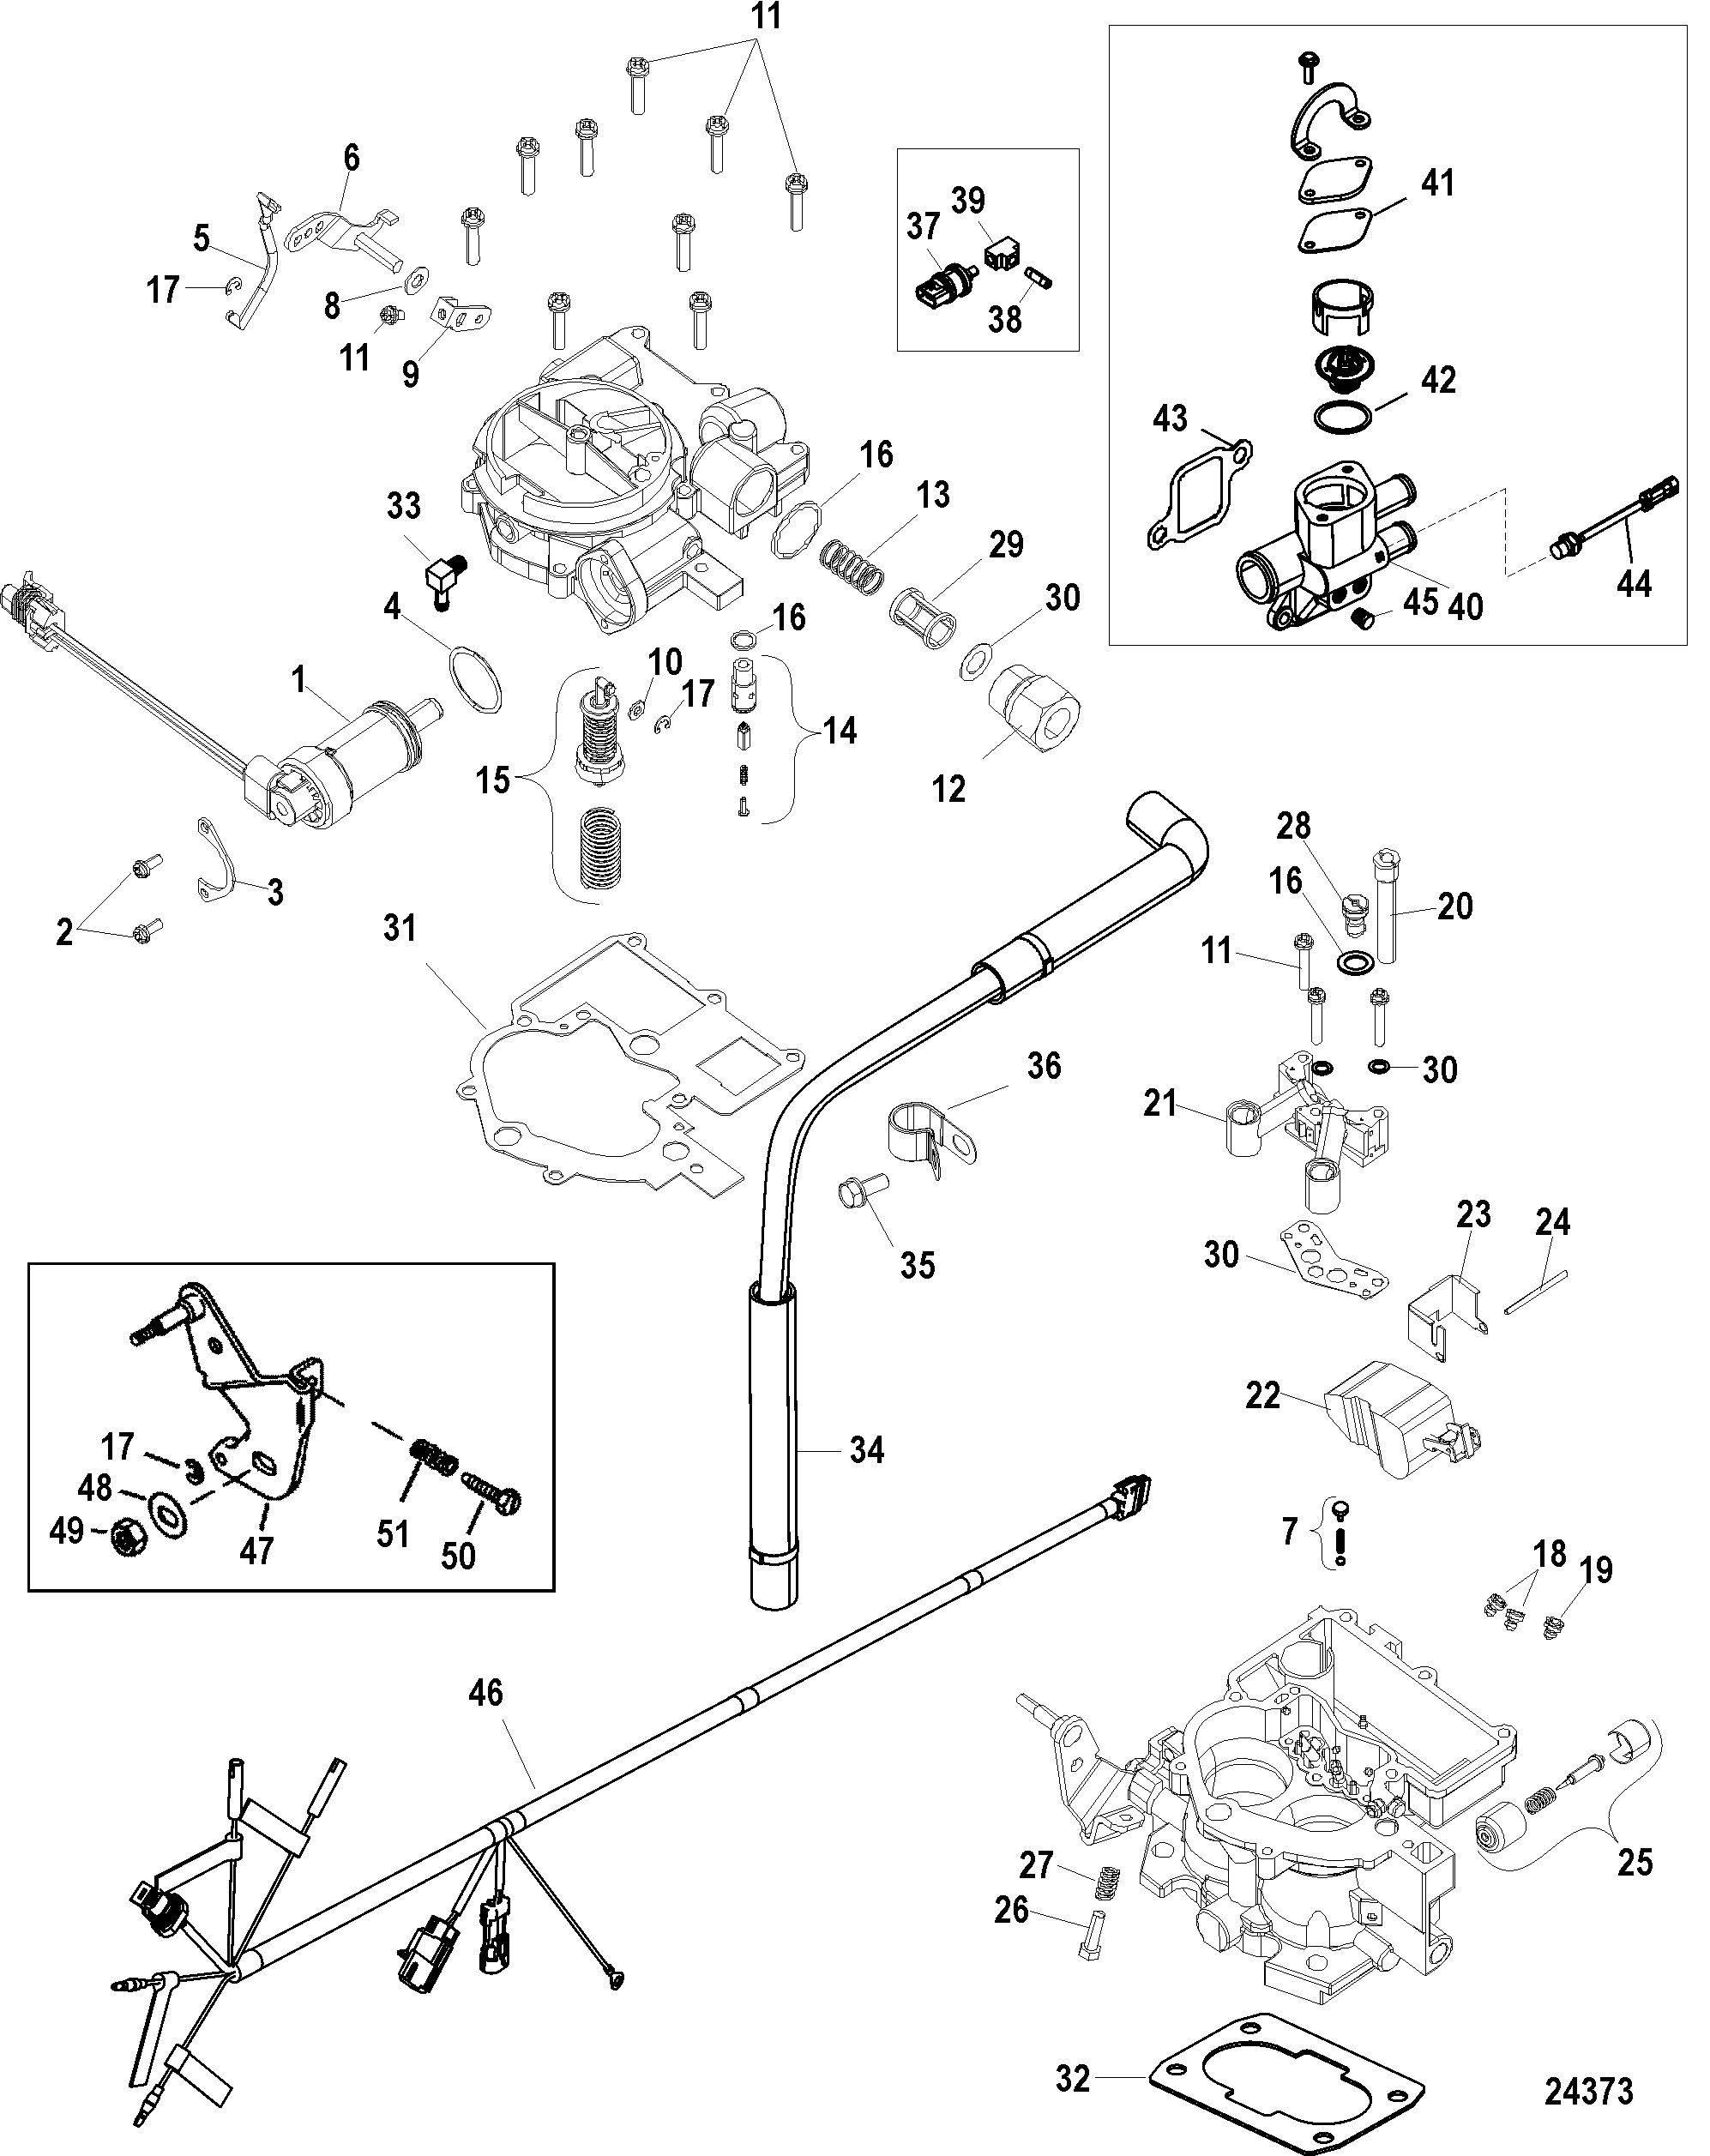 Carburetor Kit Tks For Mercruiser 3 0l Alpha One